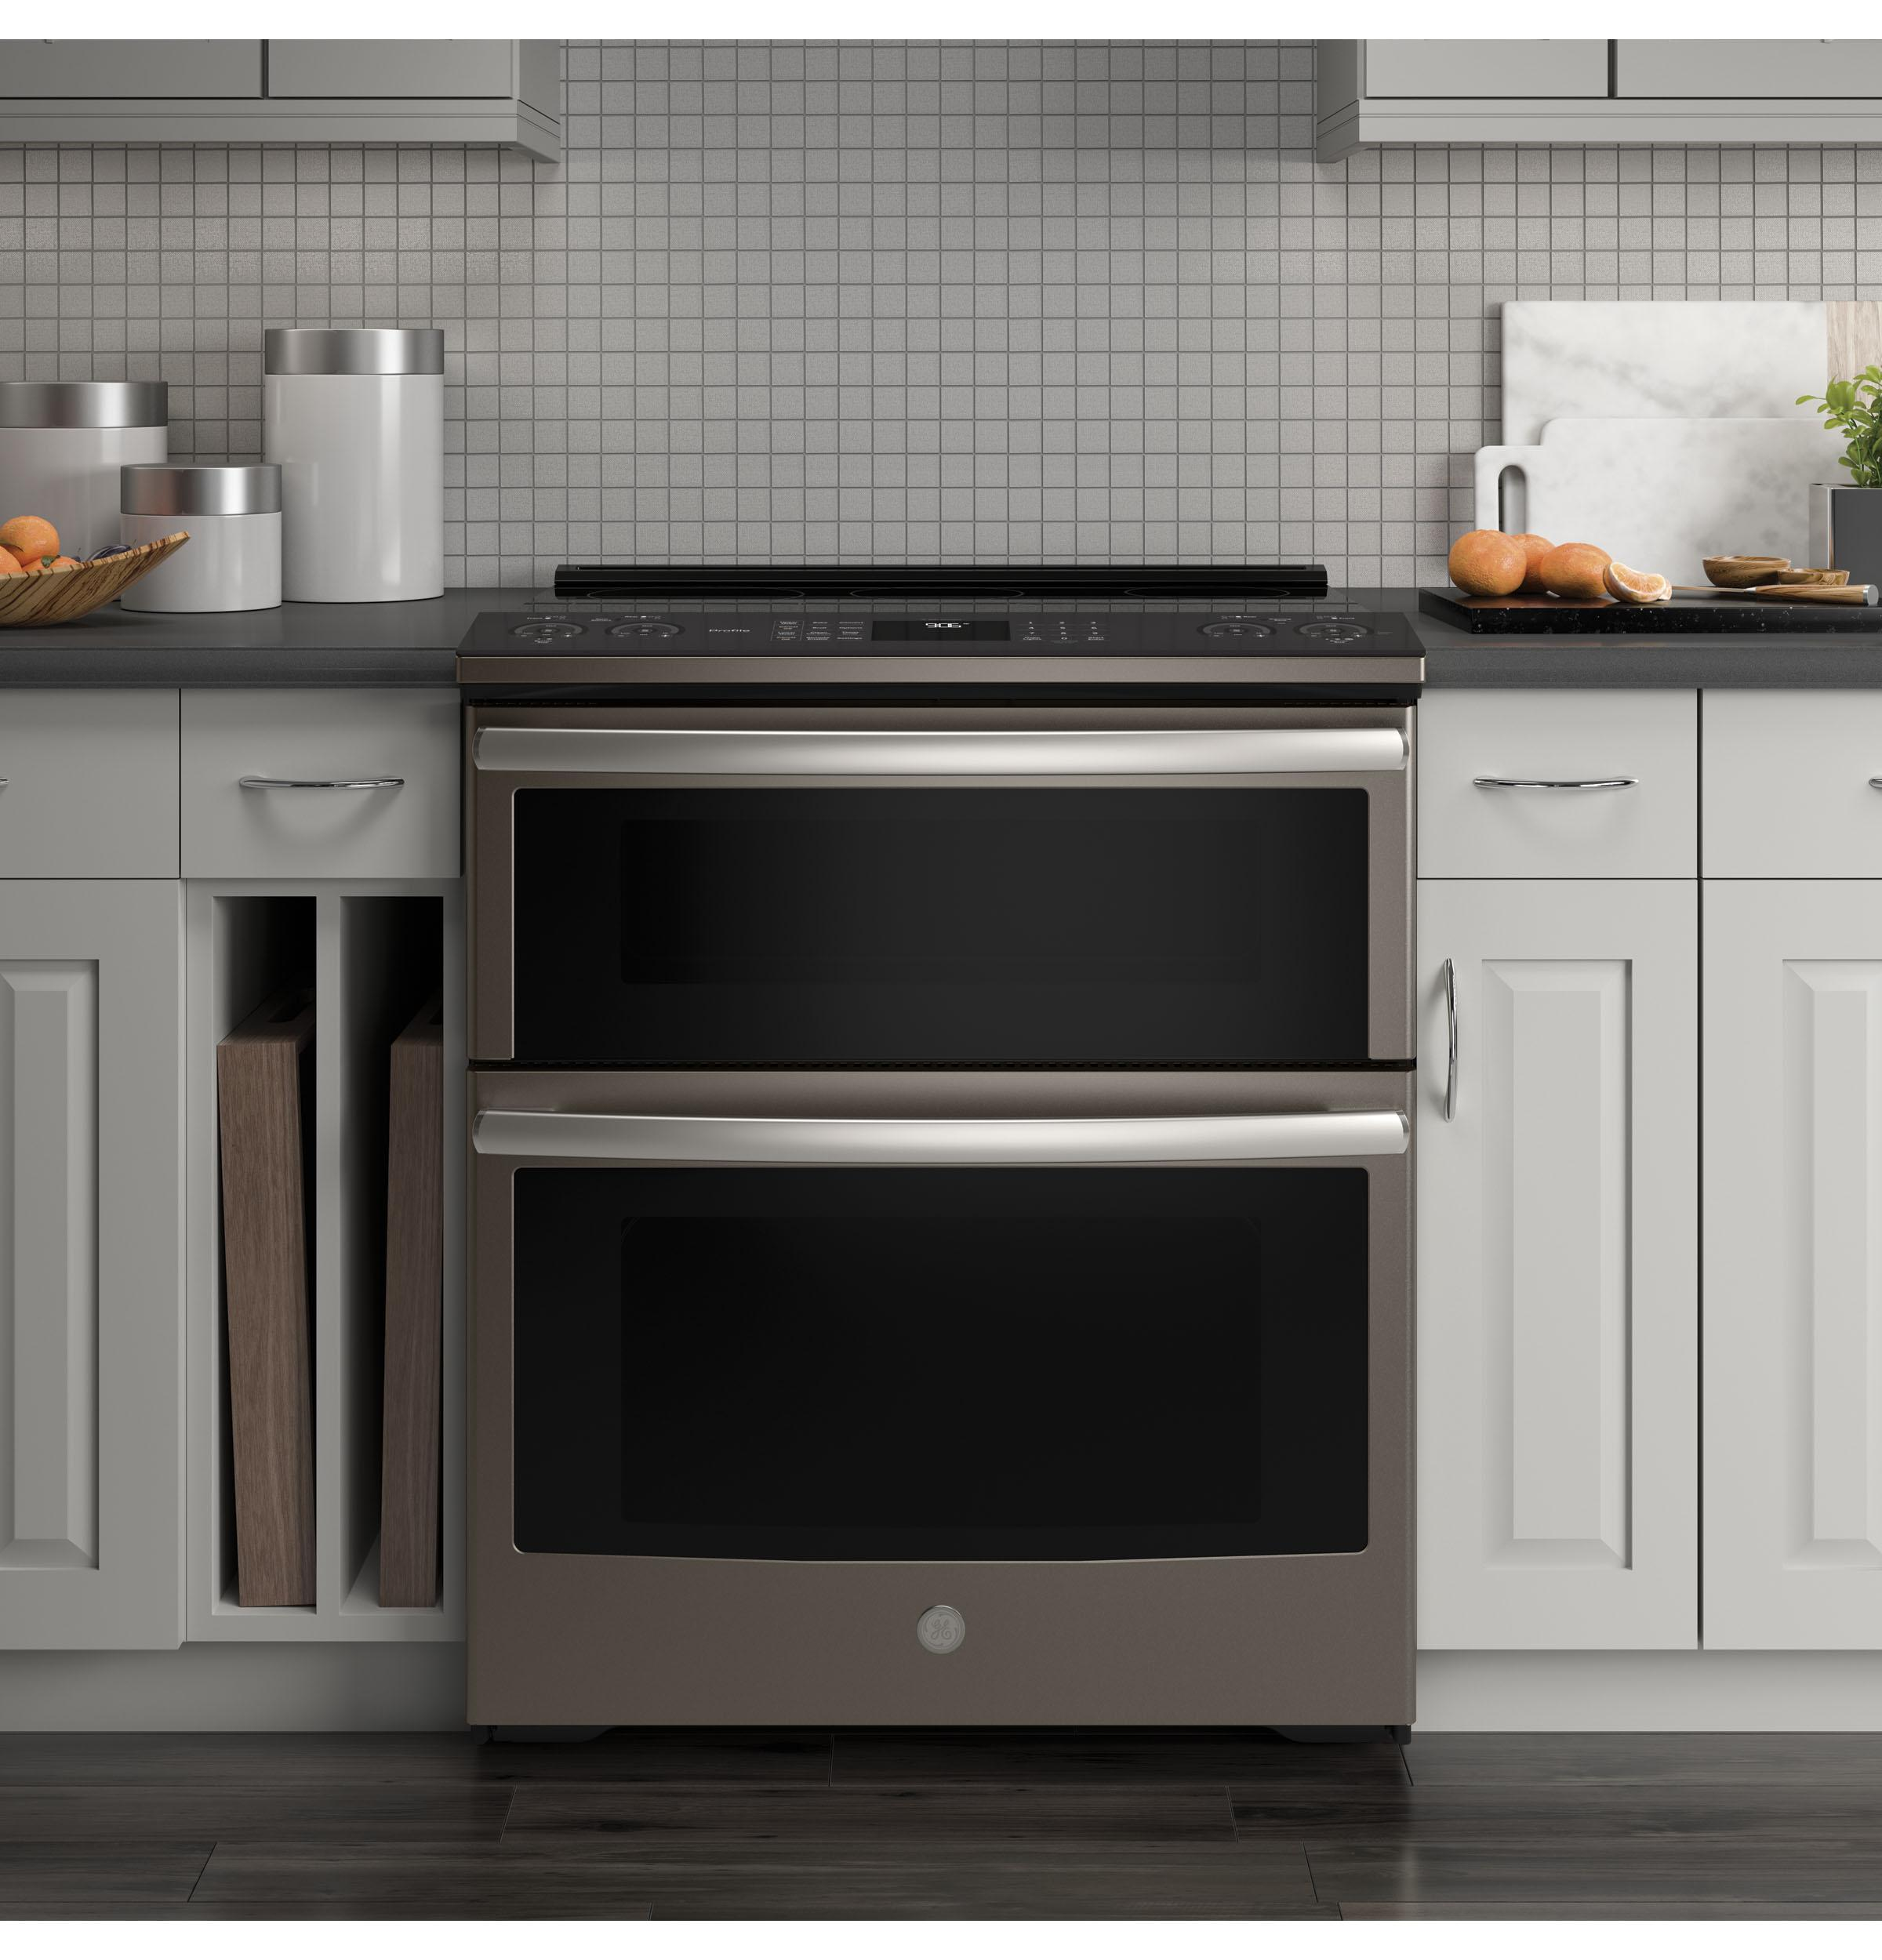 Ps960eles Ge Profile Series 30 Slide In Electric Double Oven